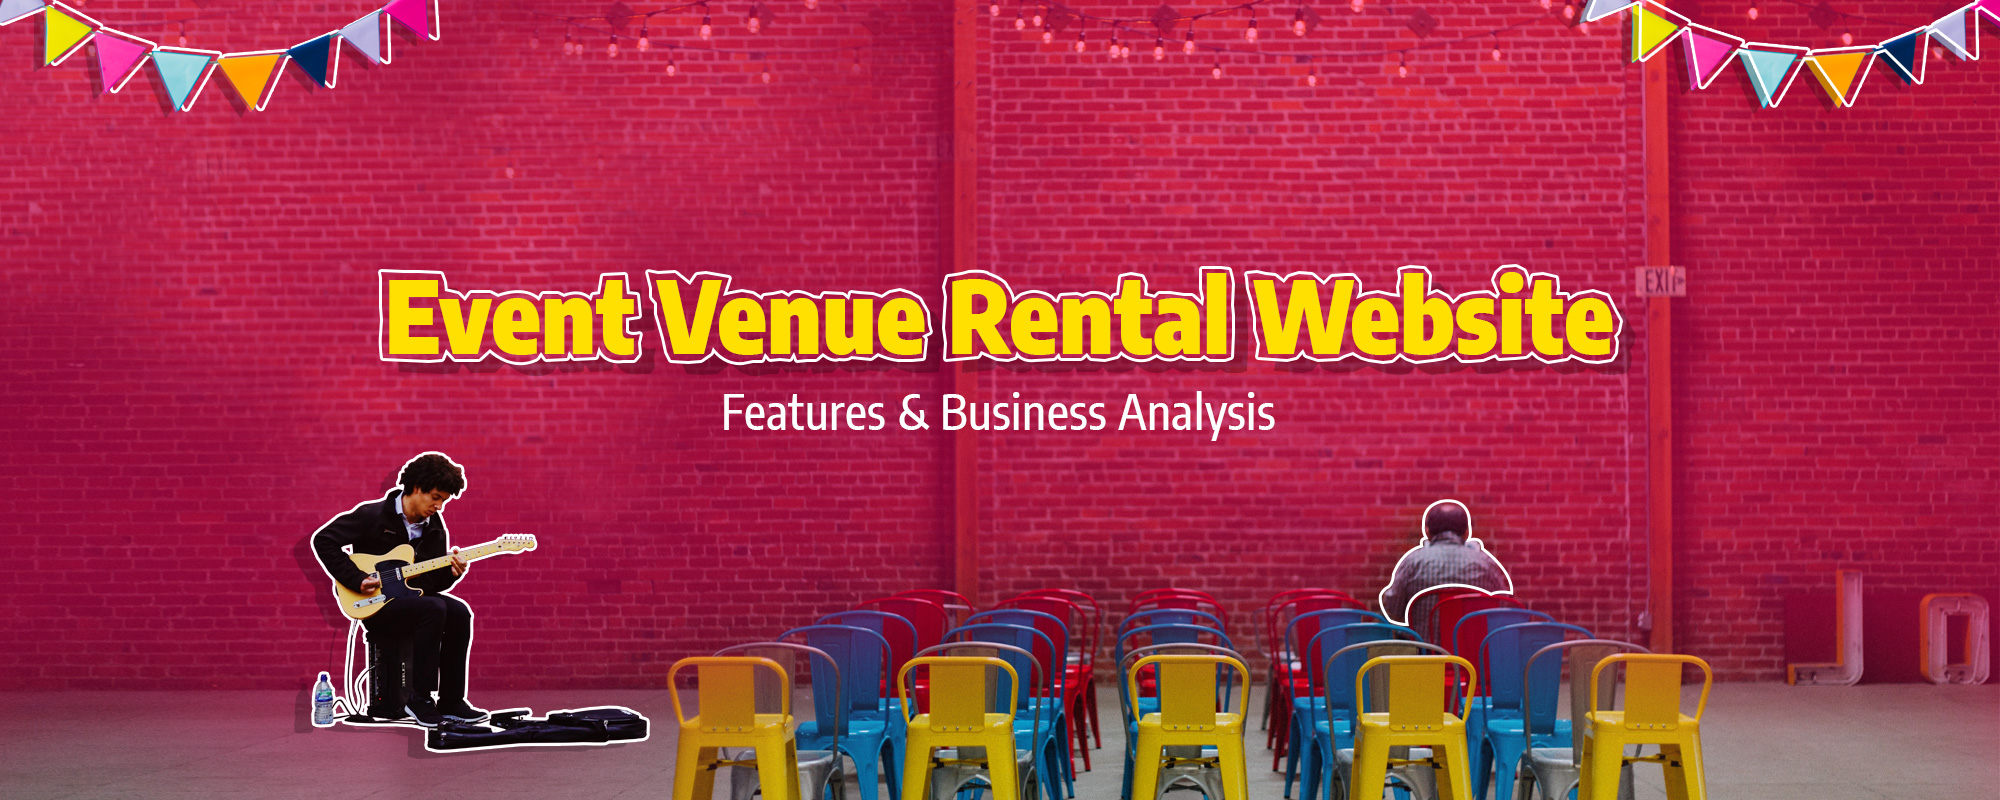 Events Venue Rental Website – Features and Business Model